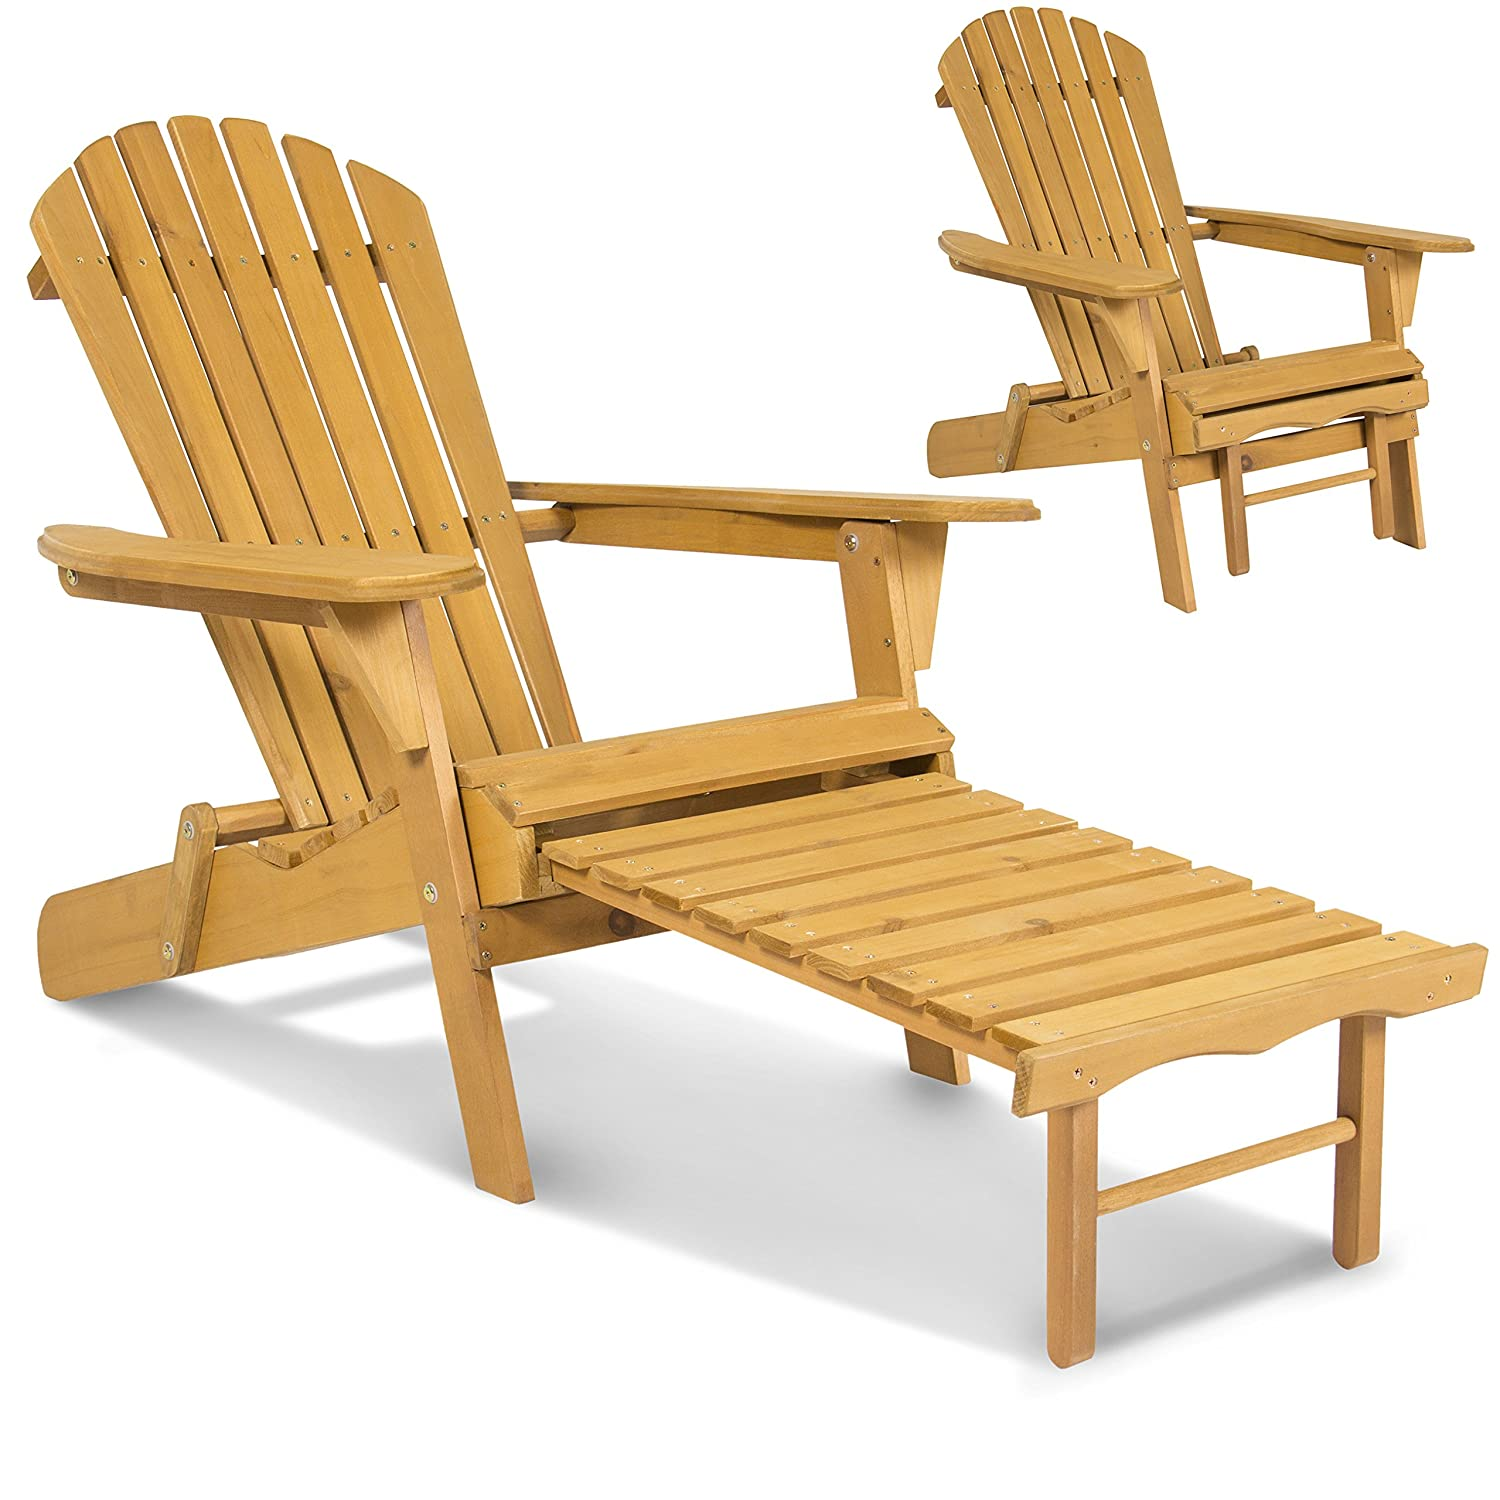 Amazon.com : Best Choice Products SKY2254 Outdoor Patio Deck Garden  Foldable Adirondack Wood Chair With Pull Out Ottoman : Garden U0026 Outdoor